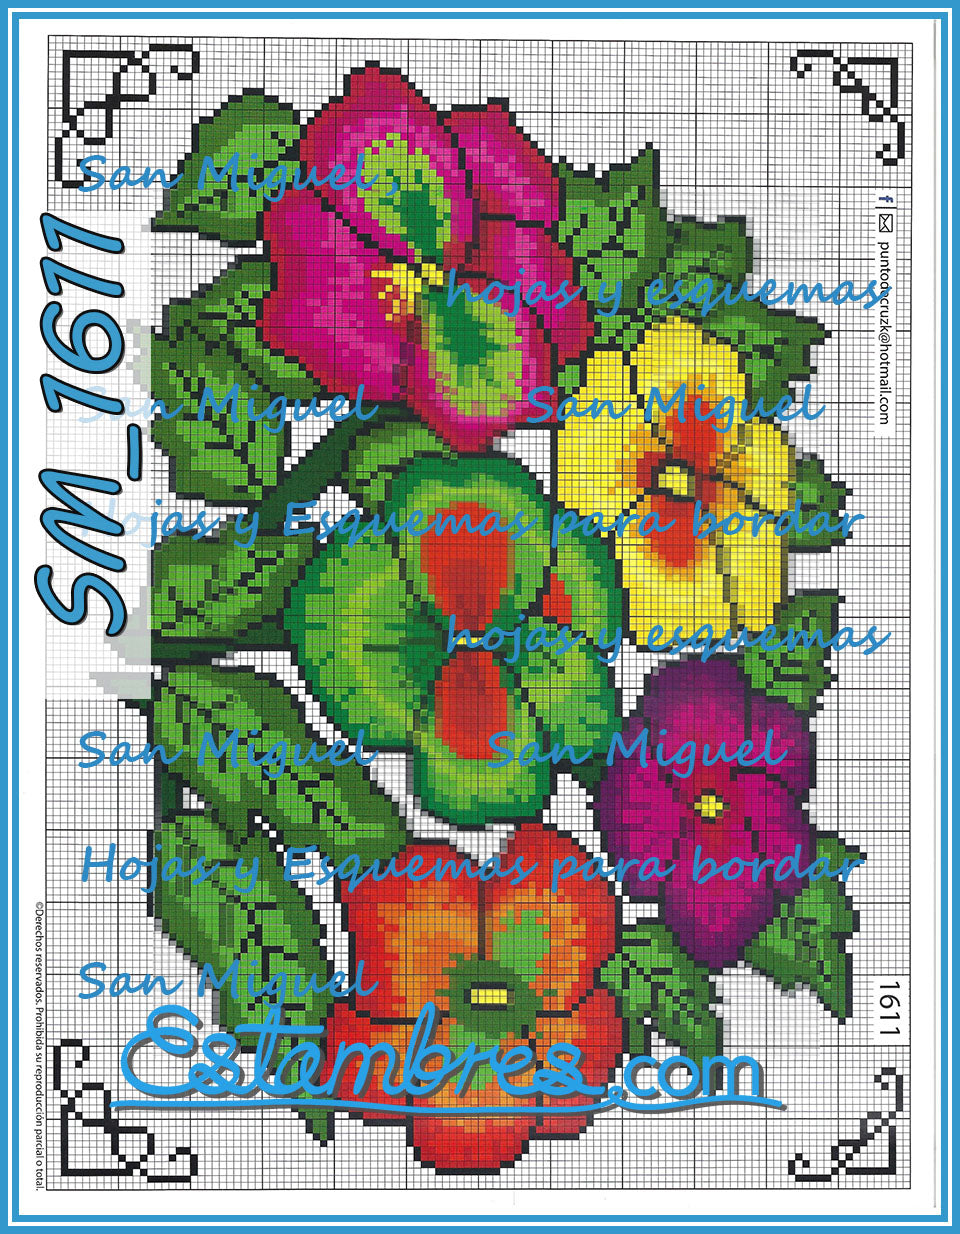 San Miguel 1600 Series - 1 of 2 - Embroidery Pattern | Crewel Stitch Embroidery | Creative Needlecraft Schemes